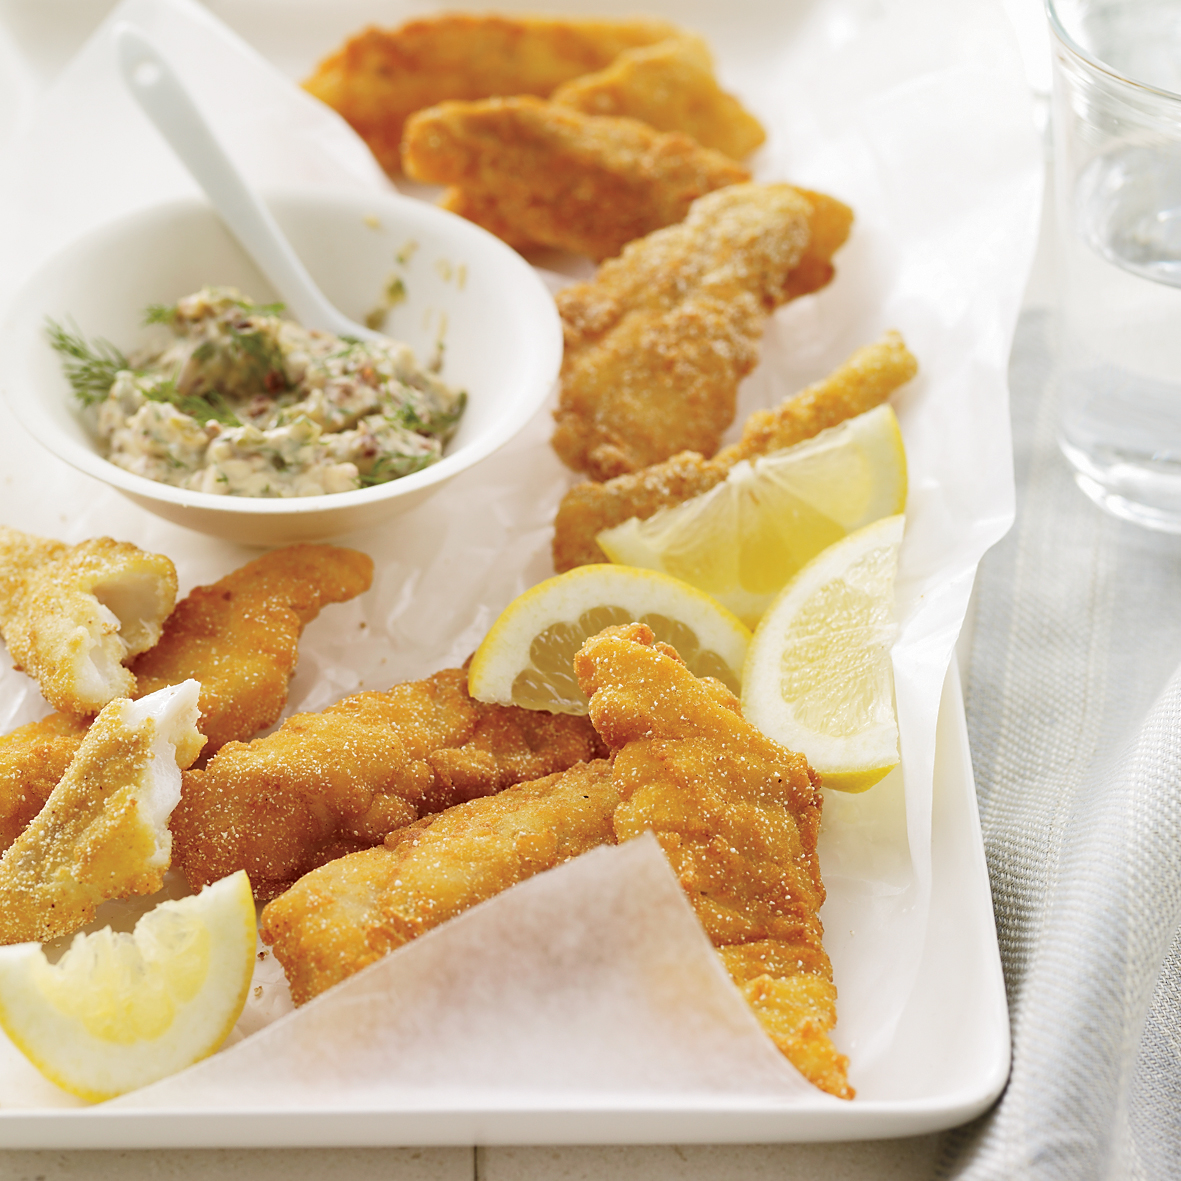 Crunchy Fish Sticks with Tartar Sauce